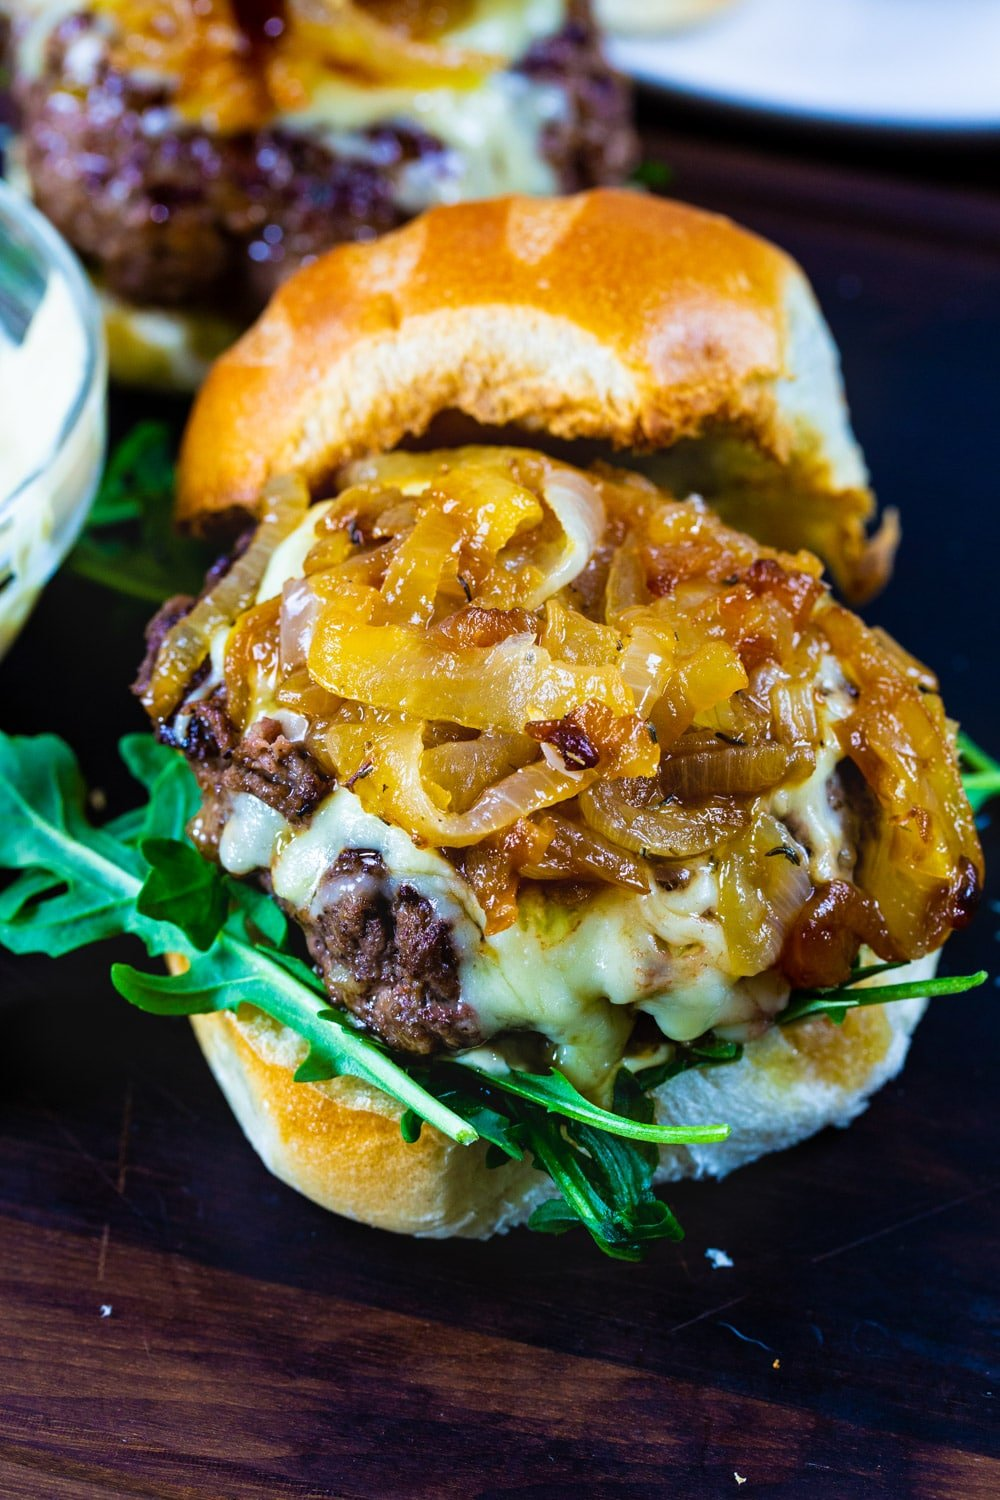 Caramelized onions on top of burger.